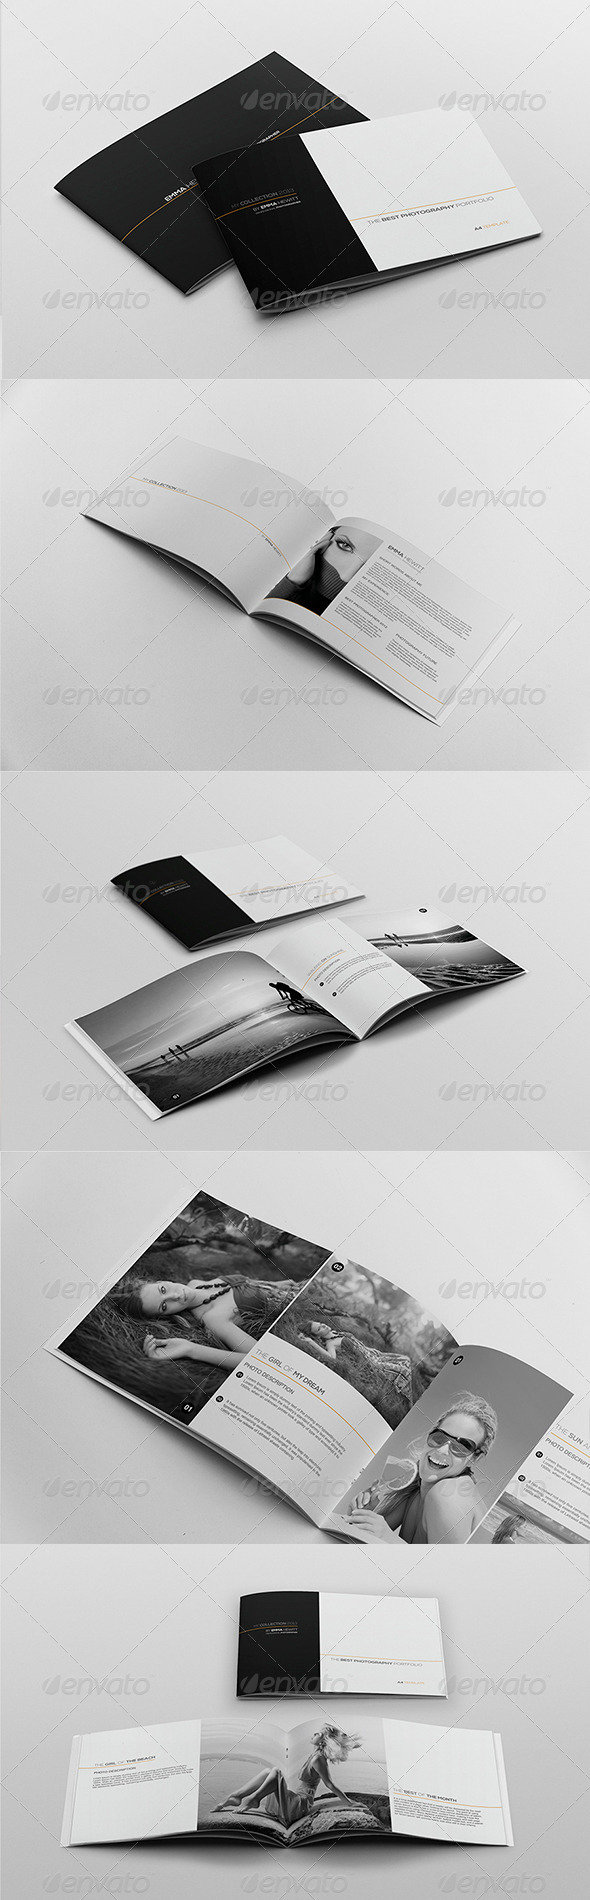 GraphicRiver My Collection 2013 Portfolio Template 4141571